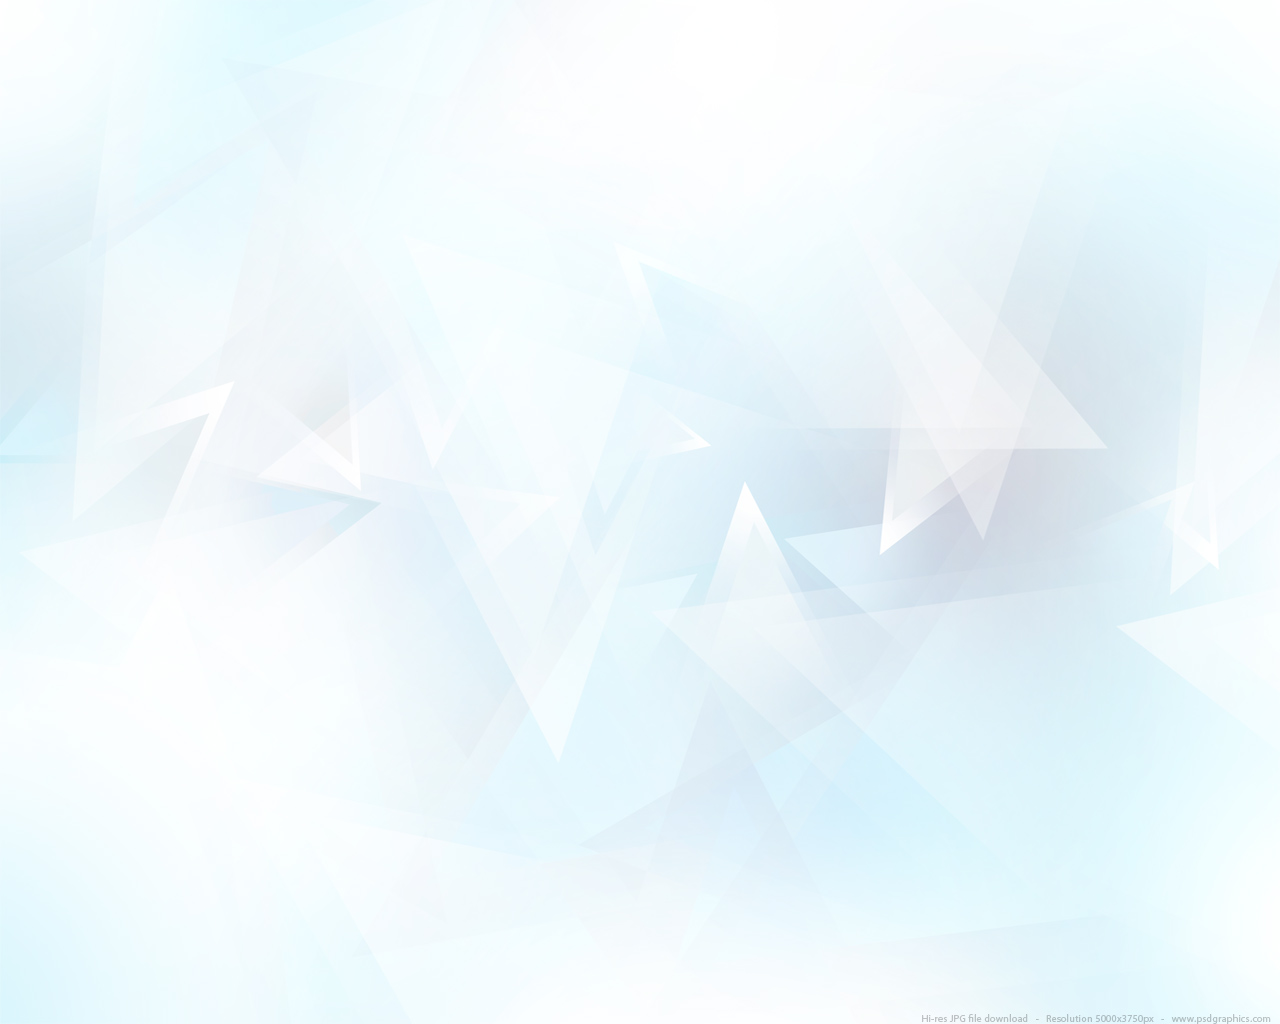 Abstract Light Blue Triangles Background Psdgraphics Blue Wallpaper White Background 1280x1024 Download Hd Wallpaper Wallpapertip